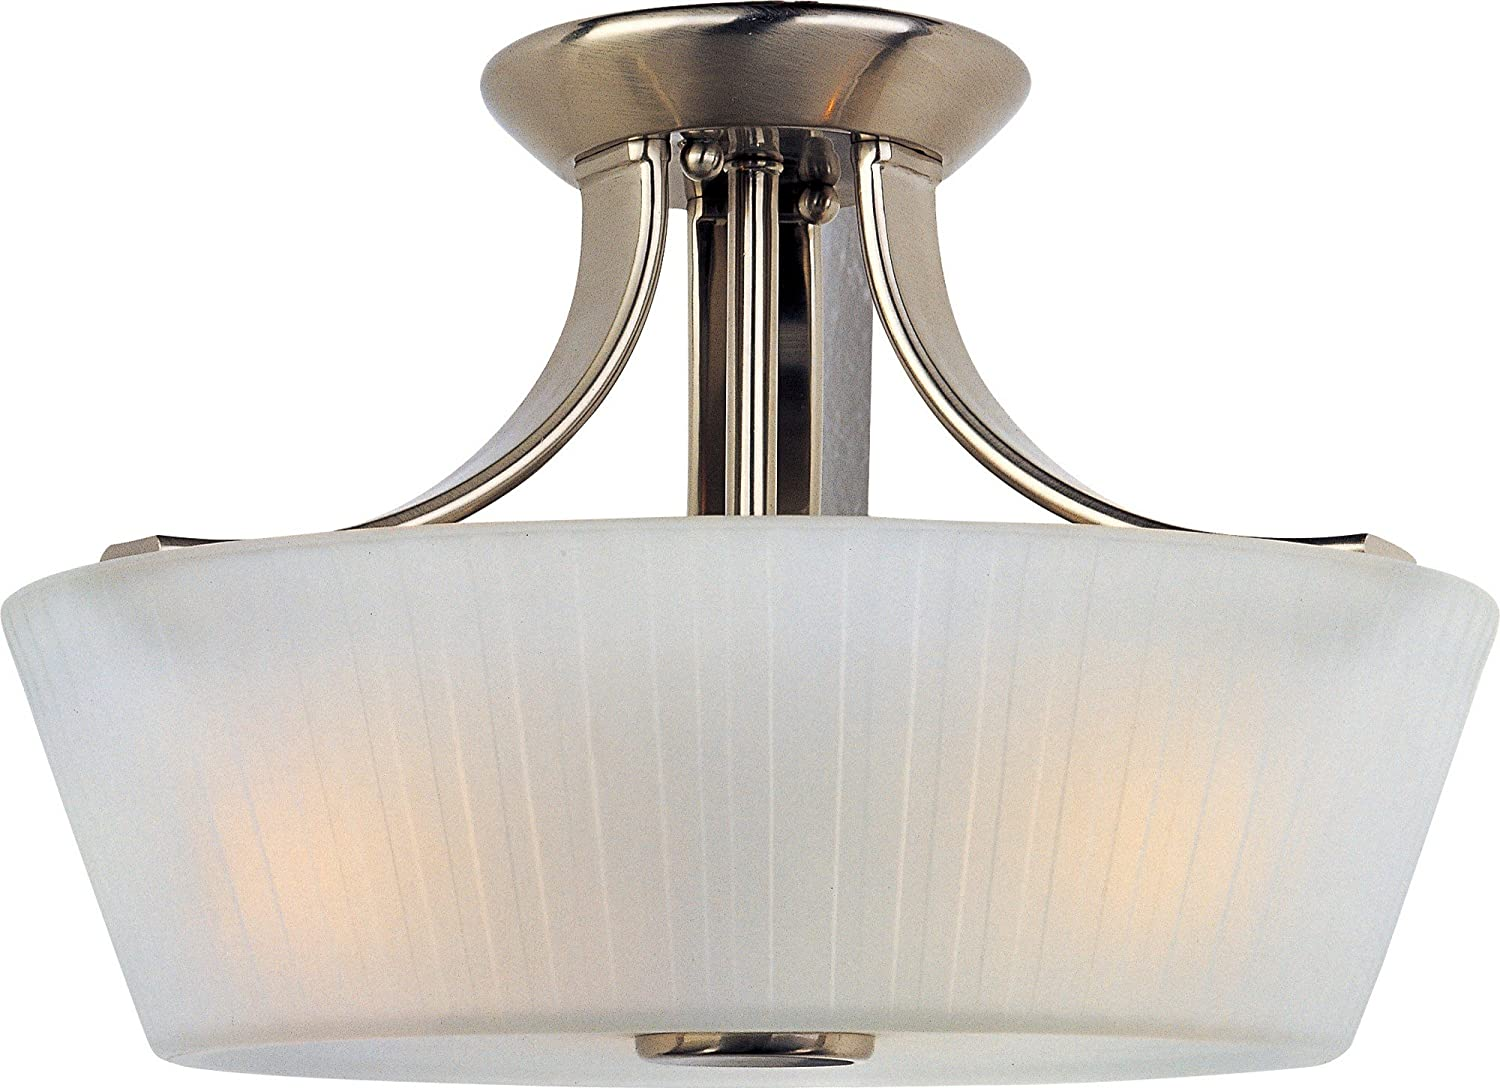 B003A46N7M Maxim 21501FTSN Finesse 3-Light Semi-Flush Mount, Satin Nickel Finish, Frosted Glass, MB Incandescent Incandescent Bulb , 60W Max., Dry Safety Rating, Standard Dimmable, Hemp Rope Shade Material, Rated Lumens 81Brb3NTlRL.SL1500_